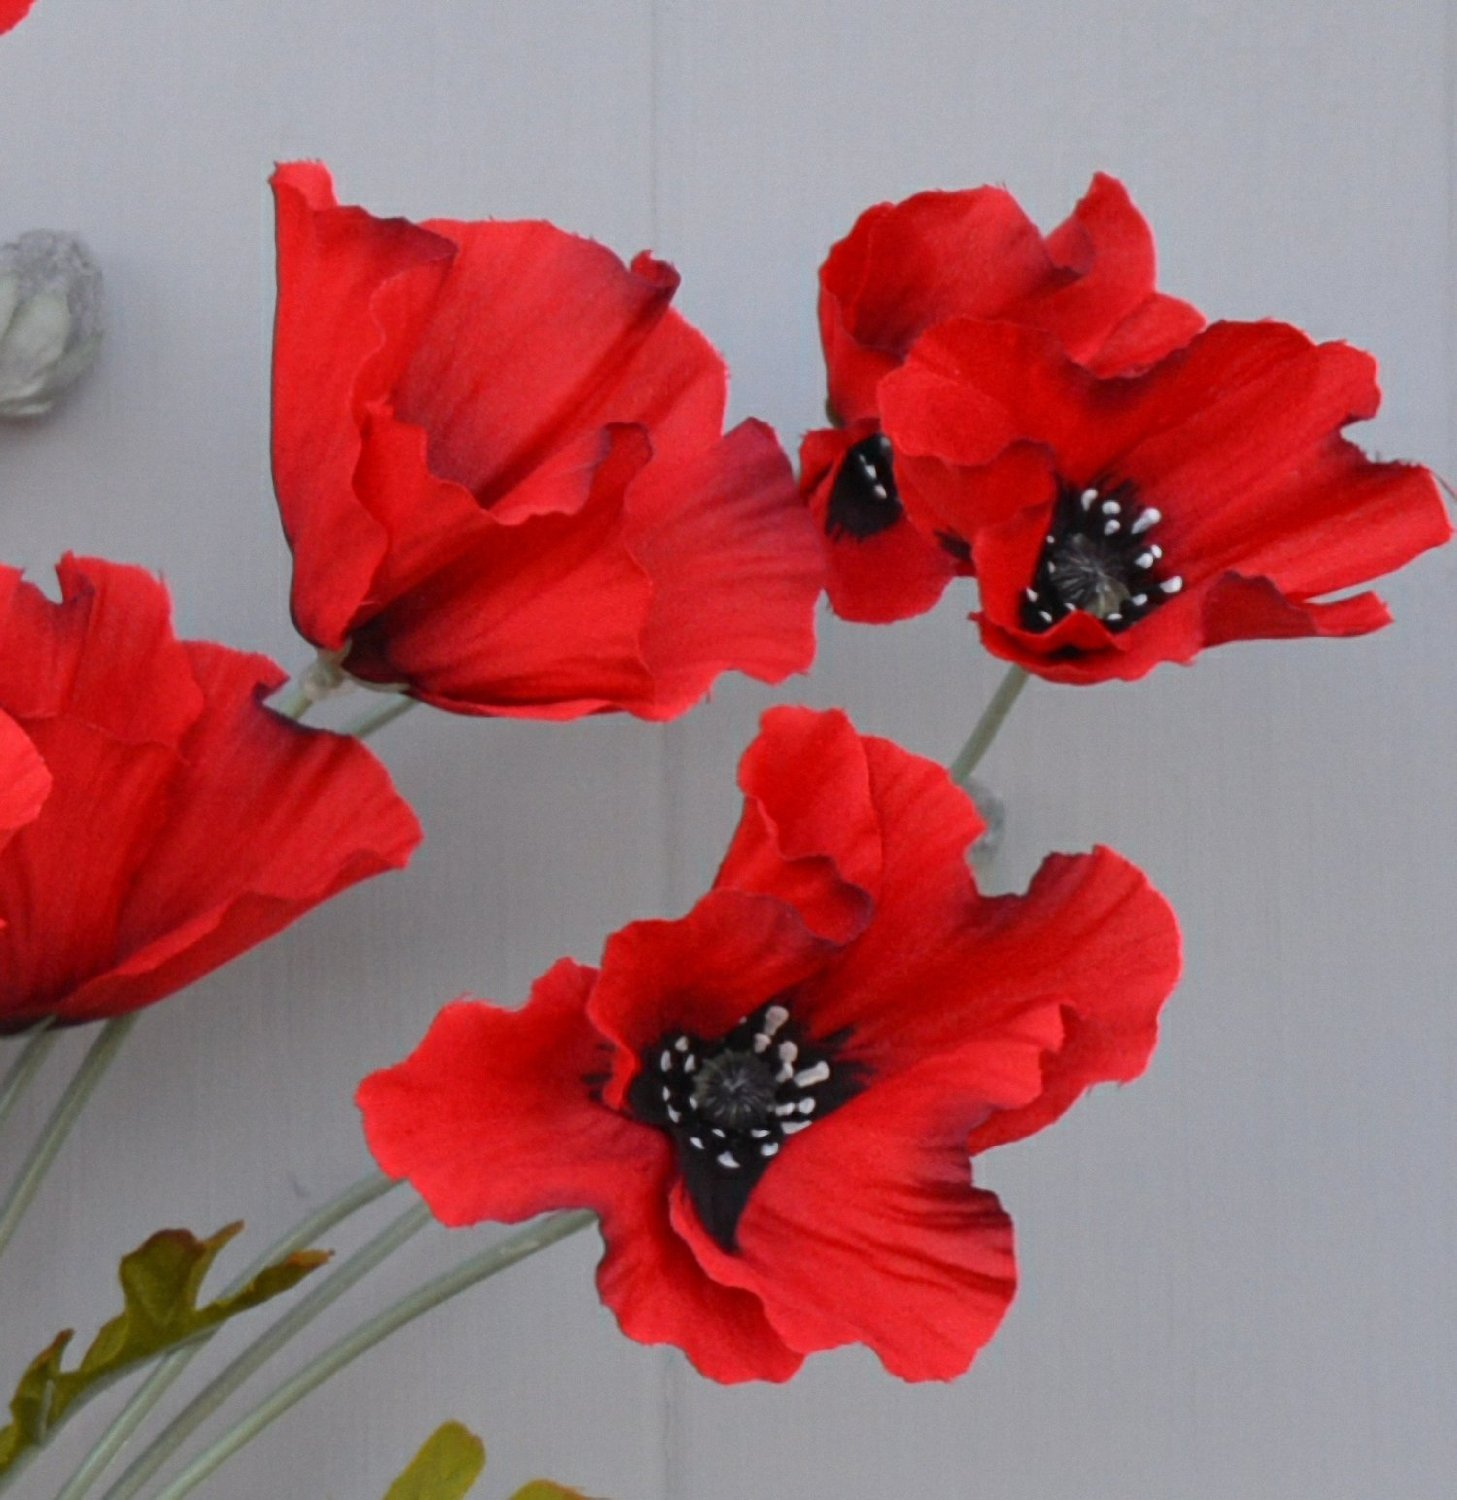 Set Of 2 Artificial Bright Red Poppy Silk Flower Sprays Poppies